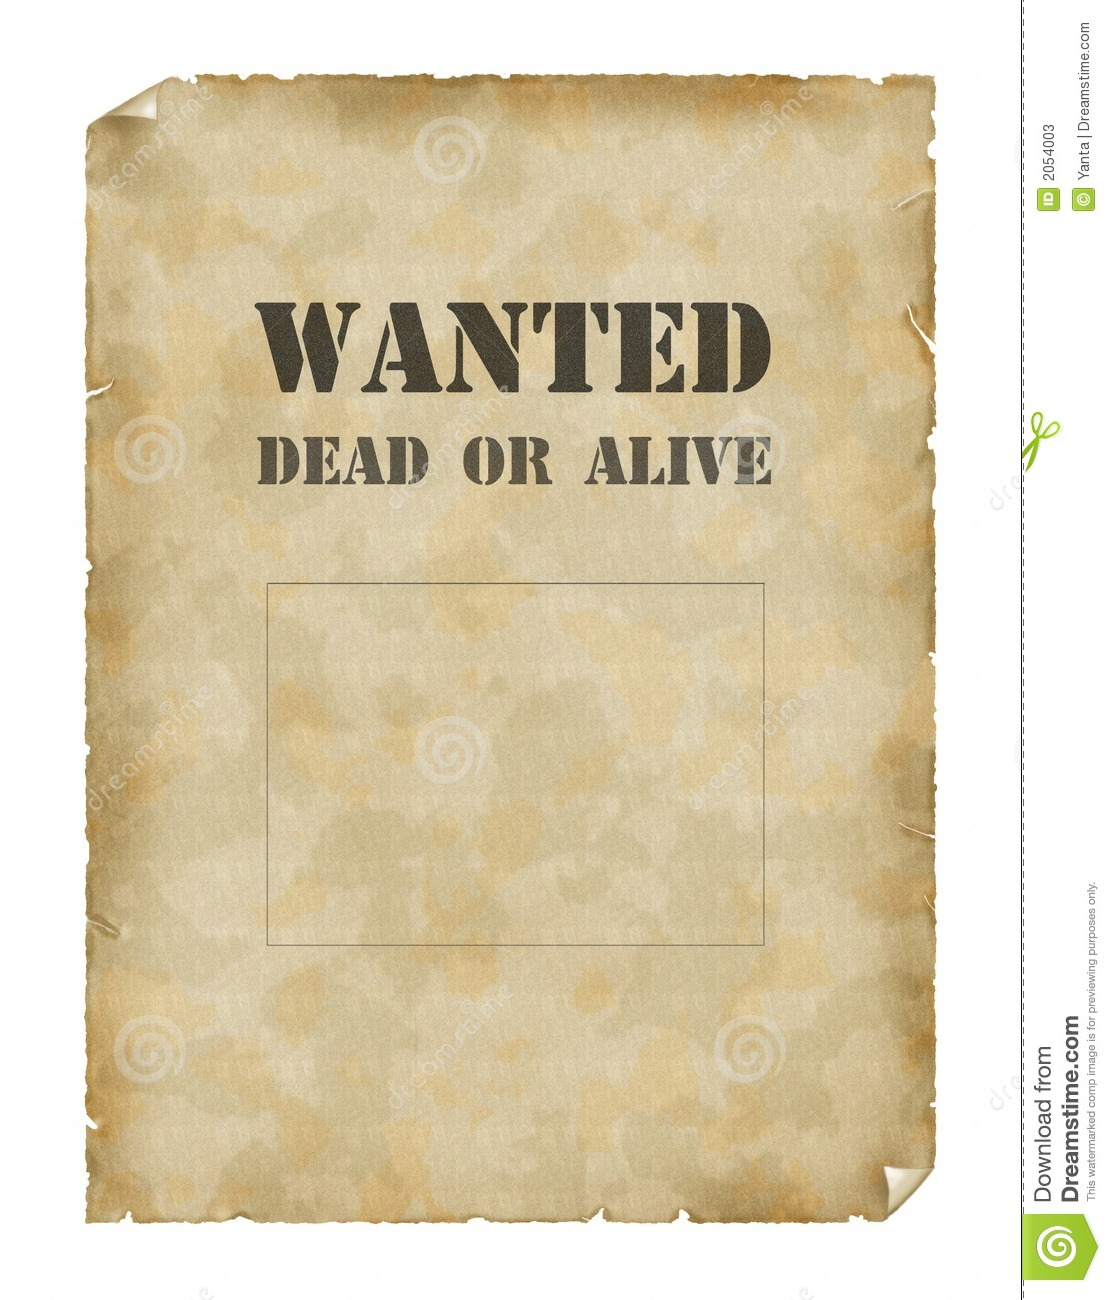 Poster Wanted Dead Or Alive Stock Photos - Image: 2054003